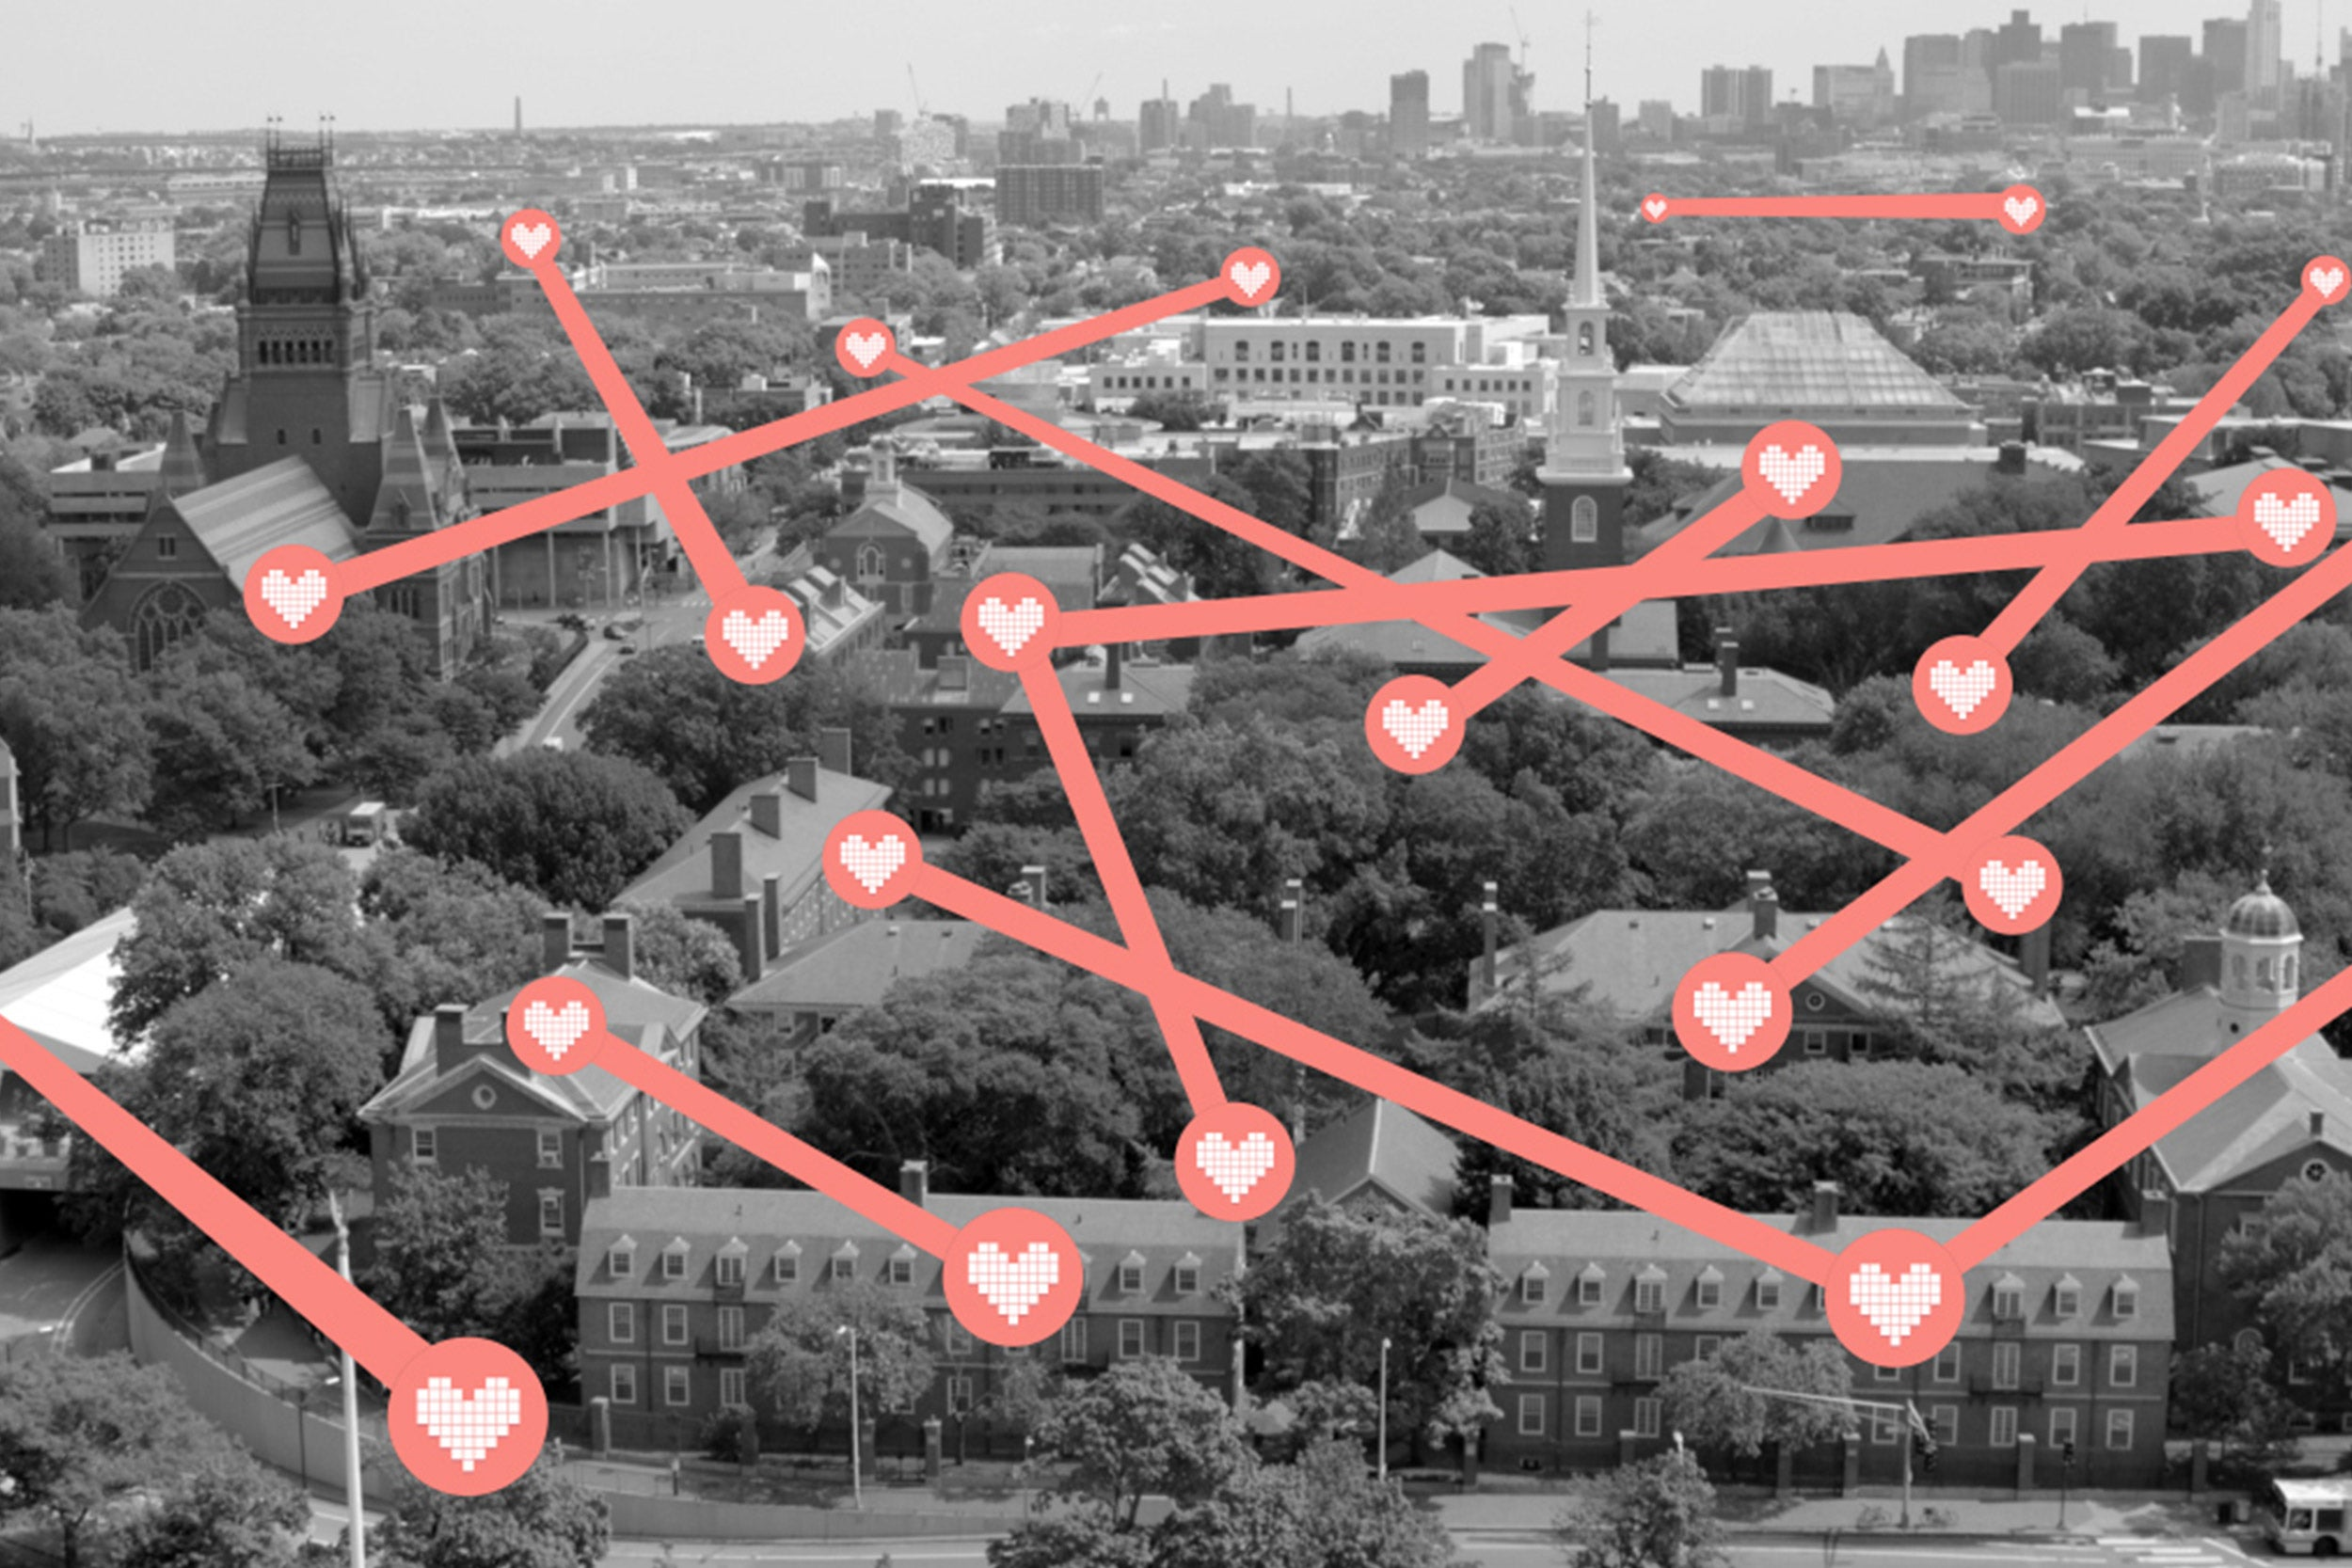 Students' Datamatch makes nationwide connection